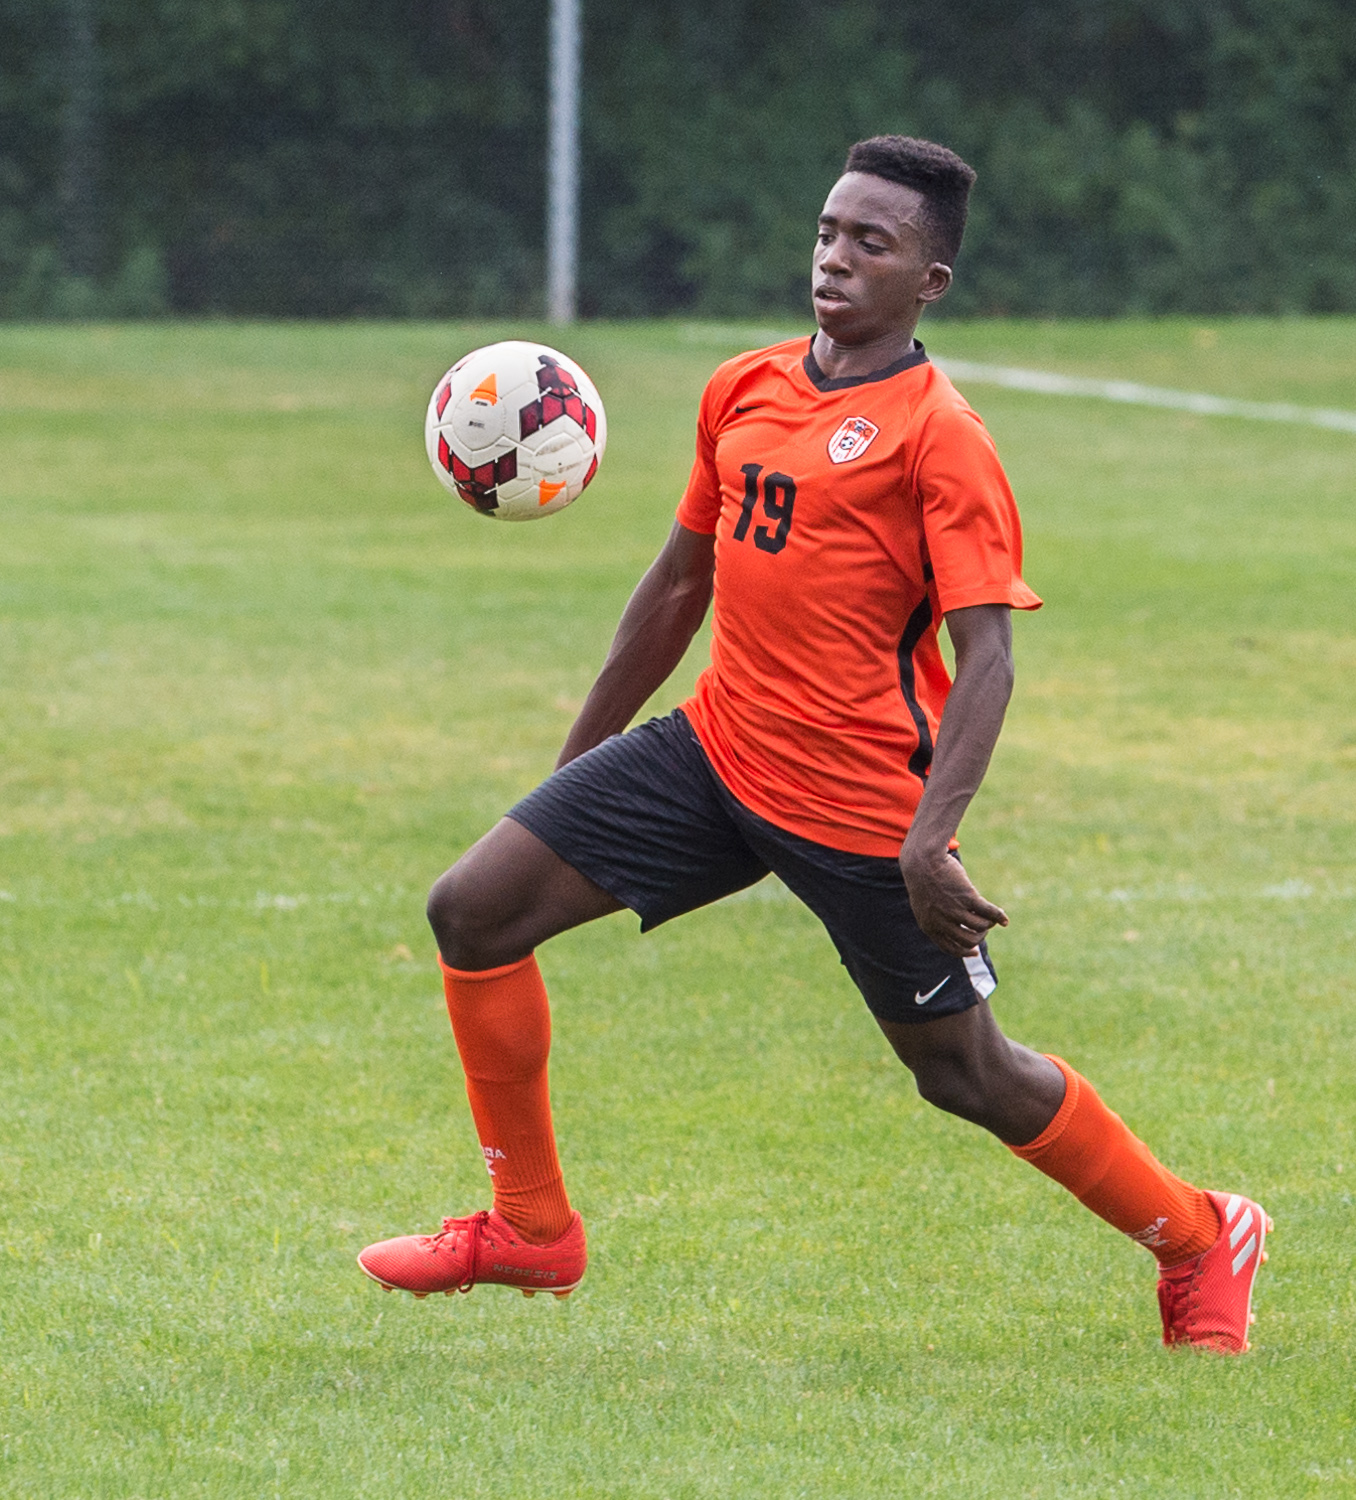 YouTube Live Stream of Hoover High Schools Soccer Games